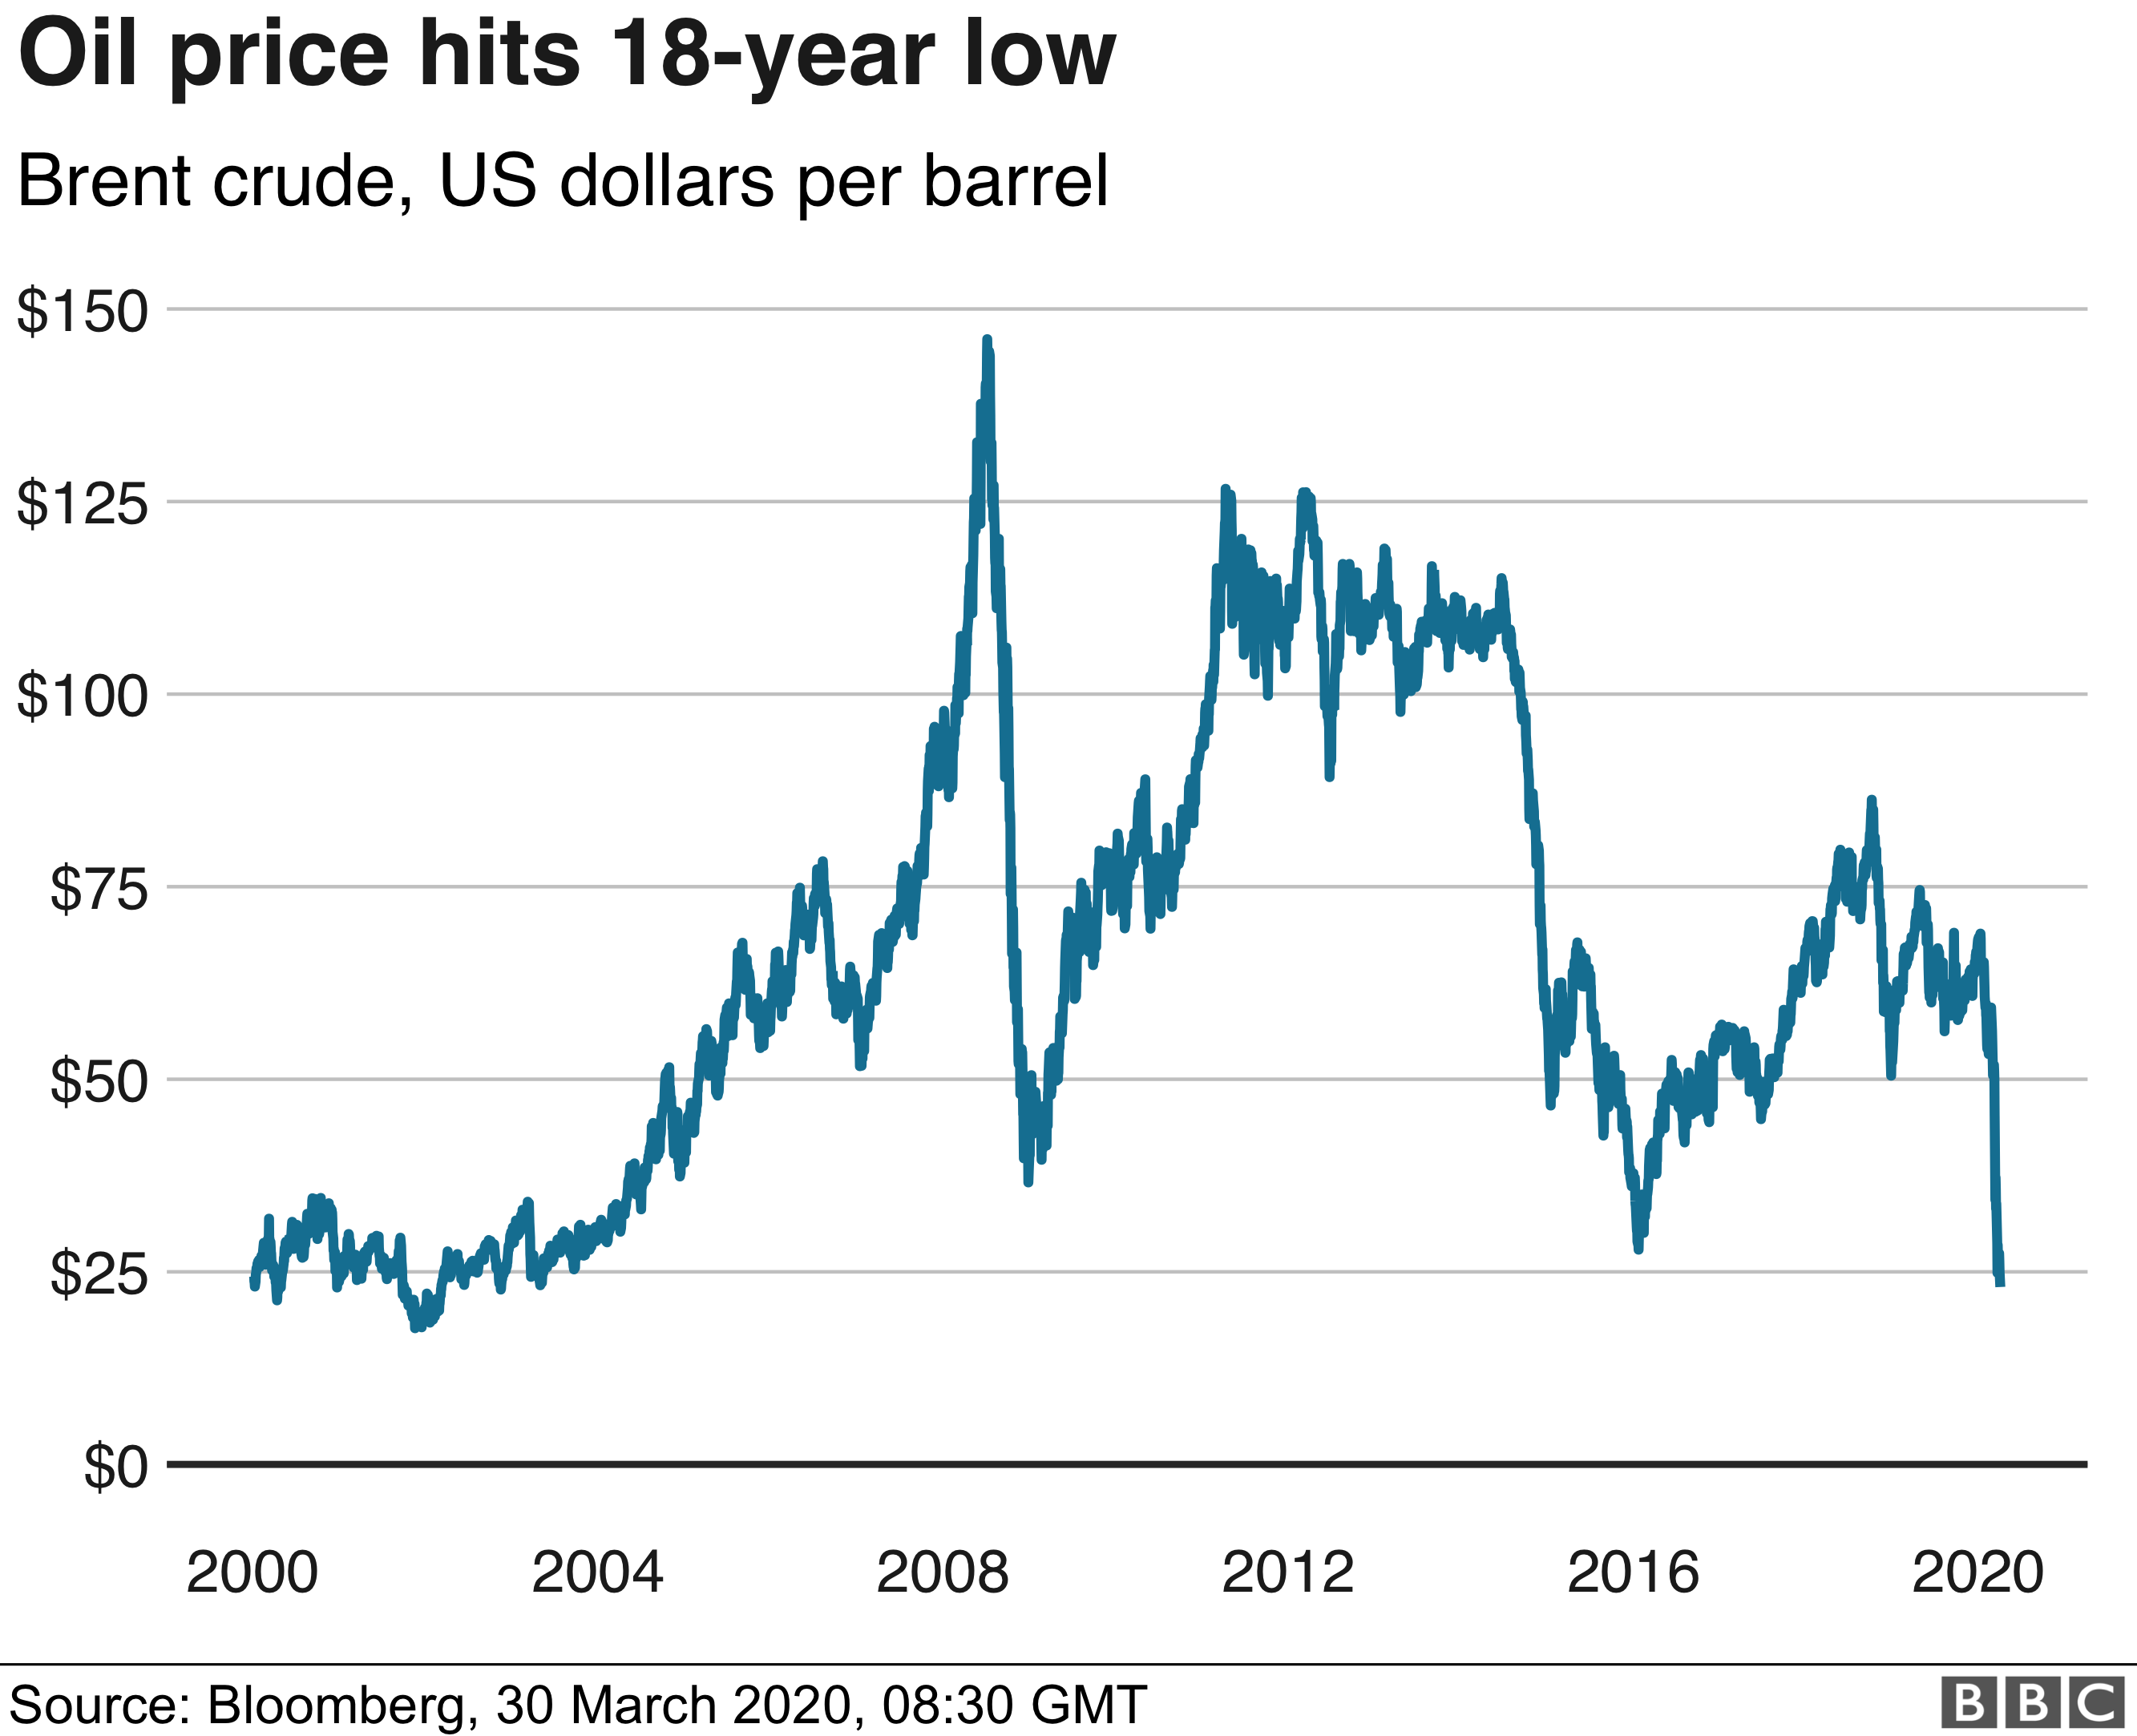 Coronavirus Oil Price Collapses To Lowest Level For 18 Years Bbc News